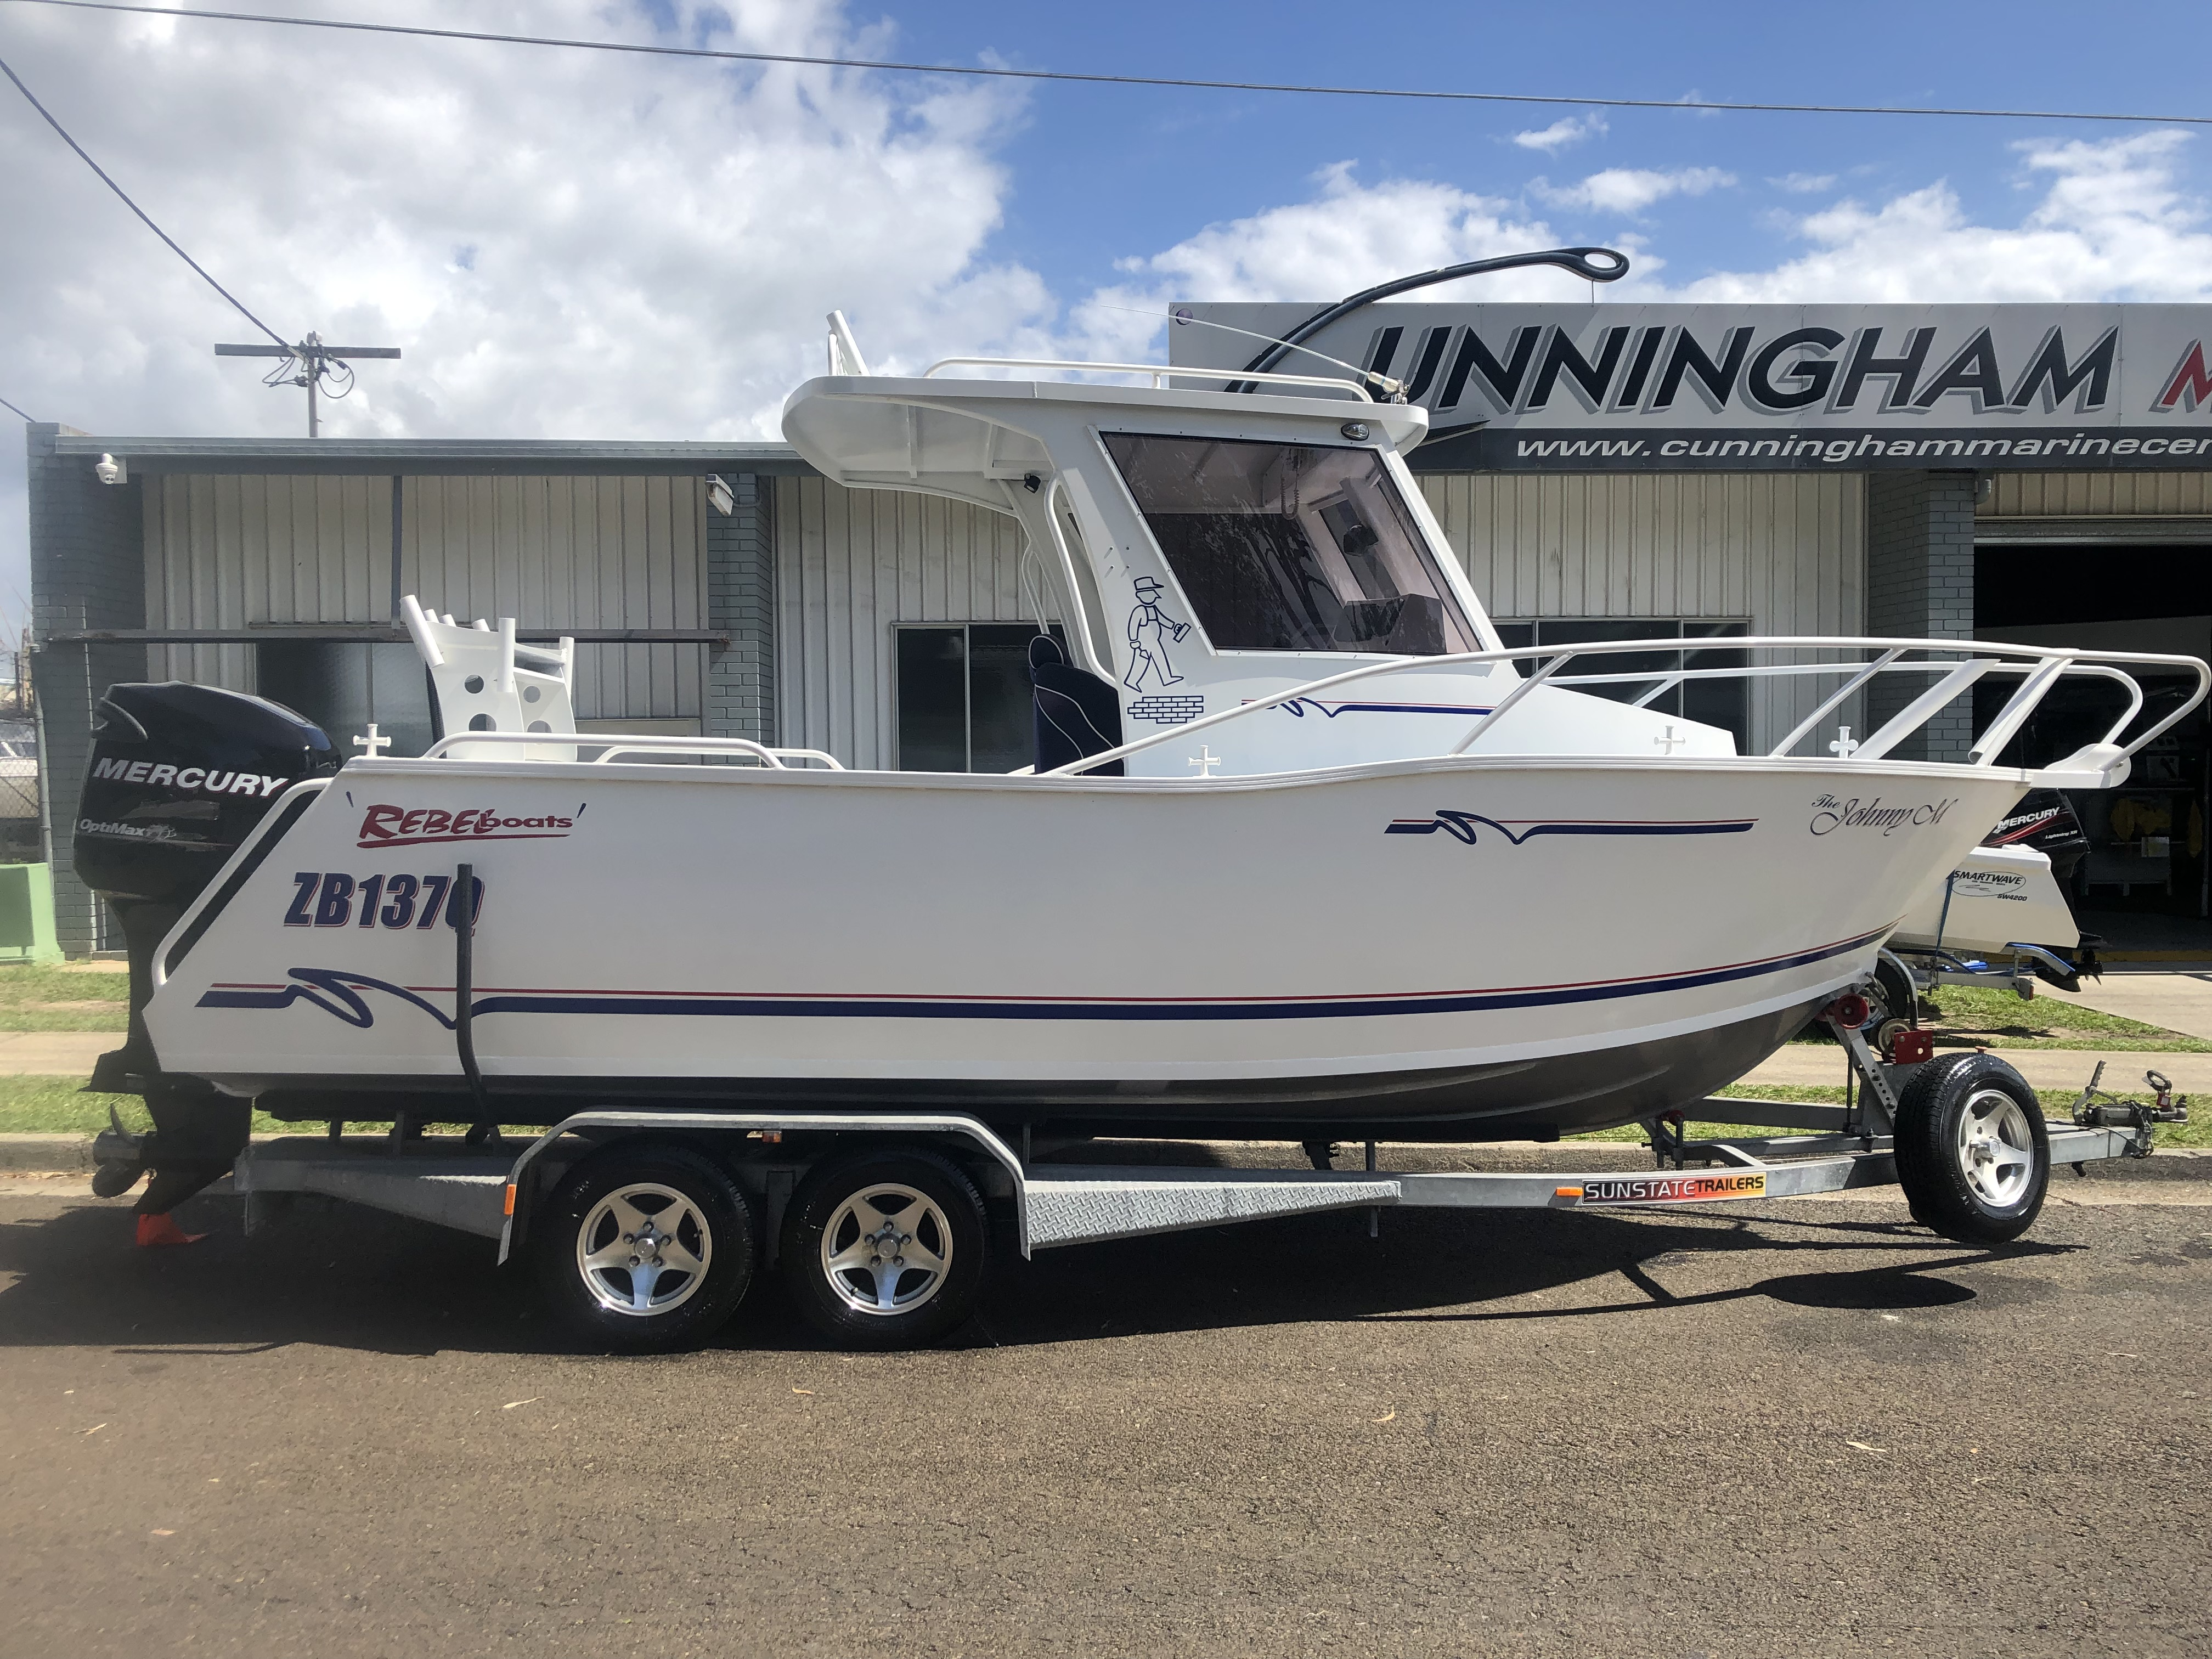 Cunningham Marine Centre | | Boats Available in Brisbane